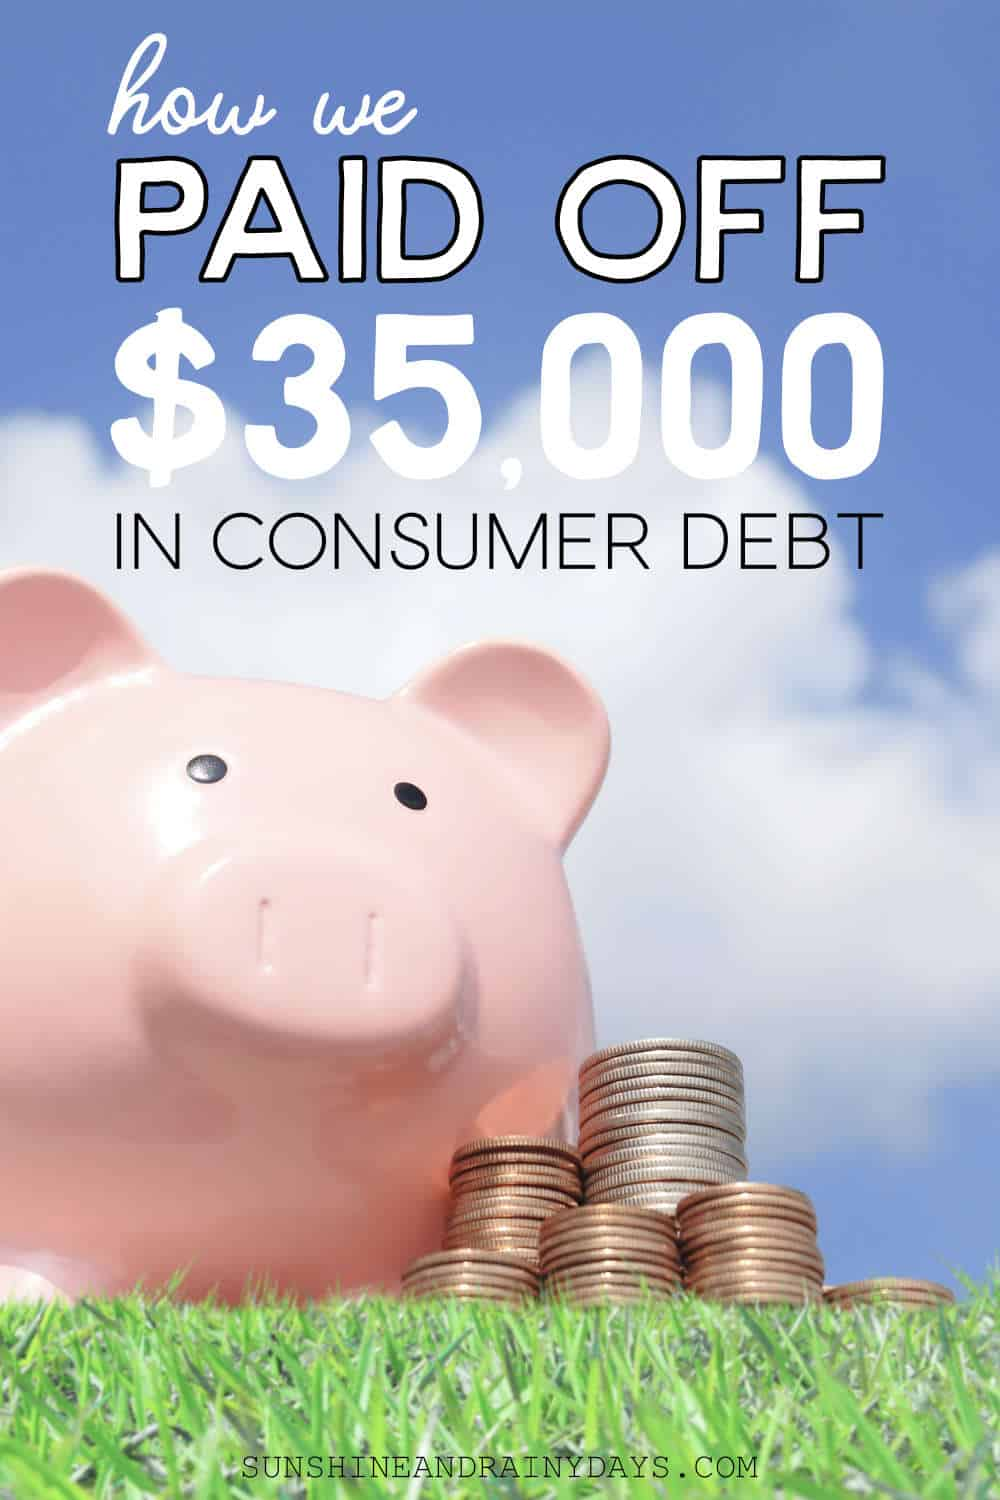 We cheated! Yep! We got drastic and paid off $35,000 in consumer debt in just ONE DAY. We didn't toil away and apply the snowball or avalanche method or spend years working away at it. I applaud those that do pay off debt that way.